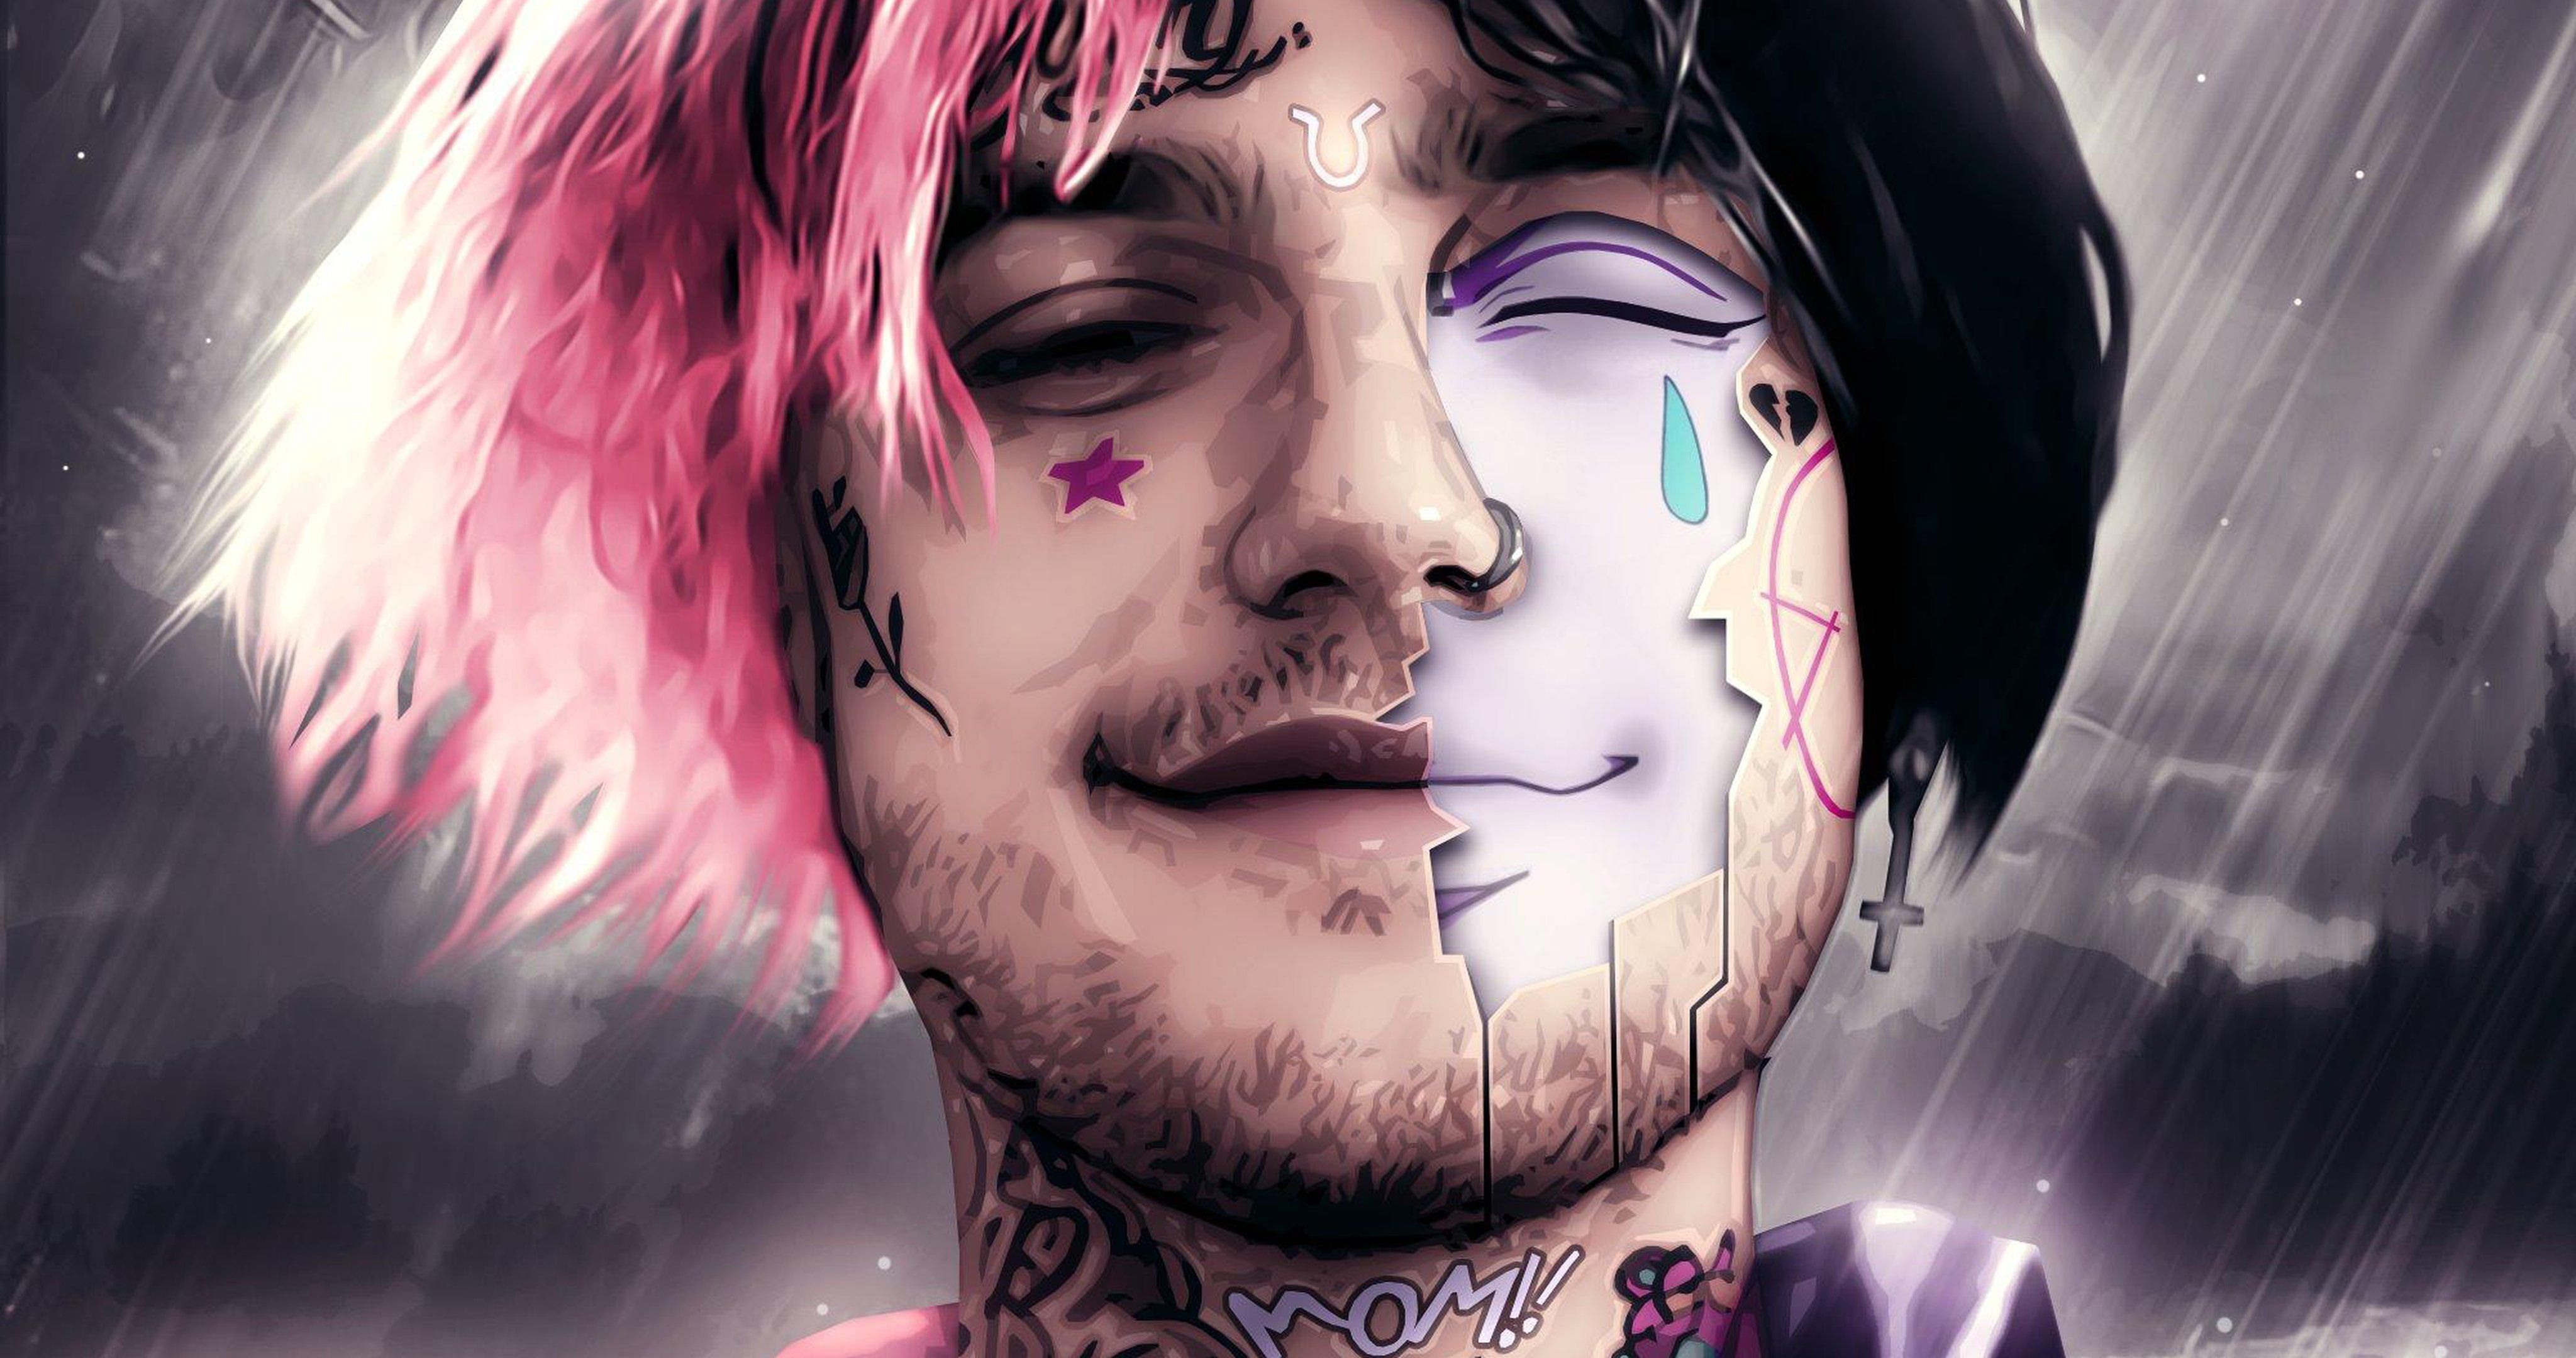 Lil Peep Wallpapers Hd PC